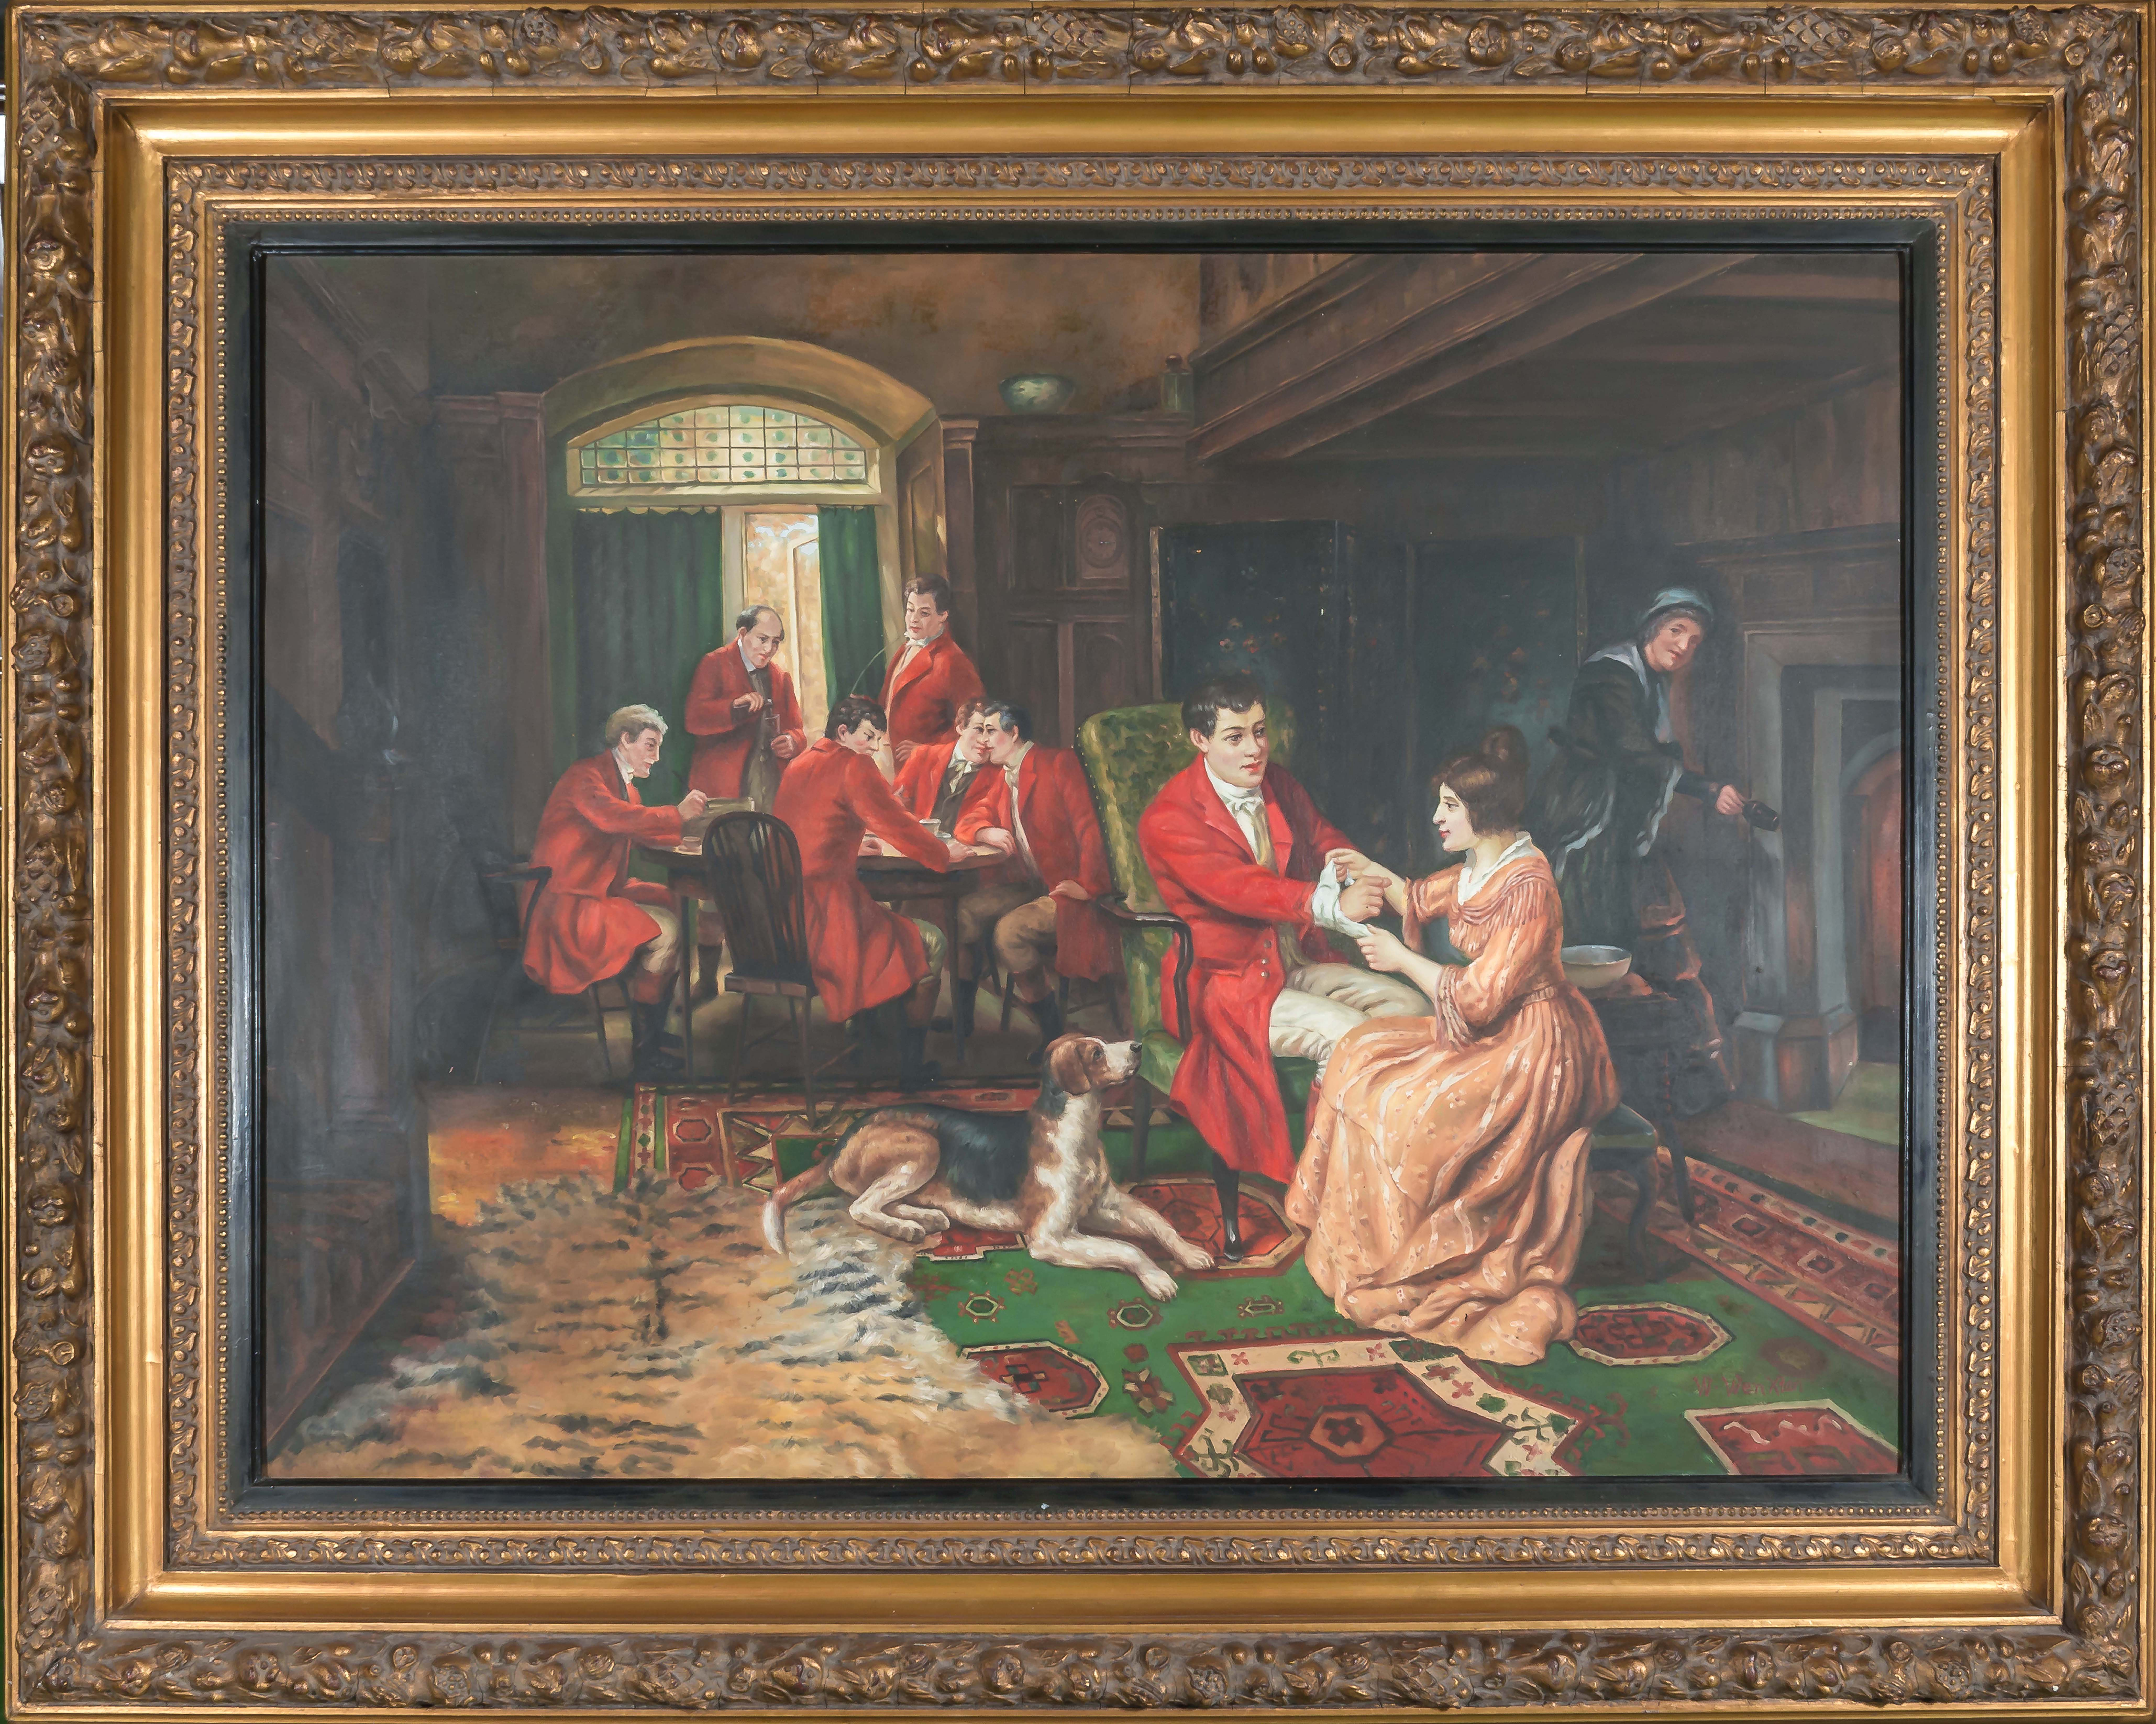 Lot 54 - A large gilt framed oleograph on canvas. Overall size 1.2m x 1.6m